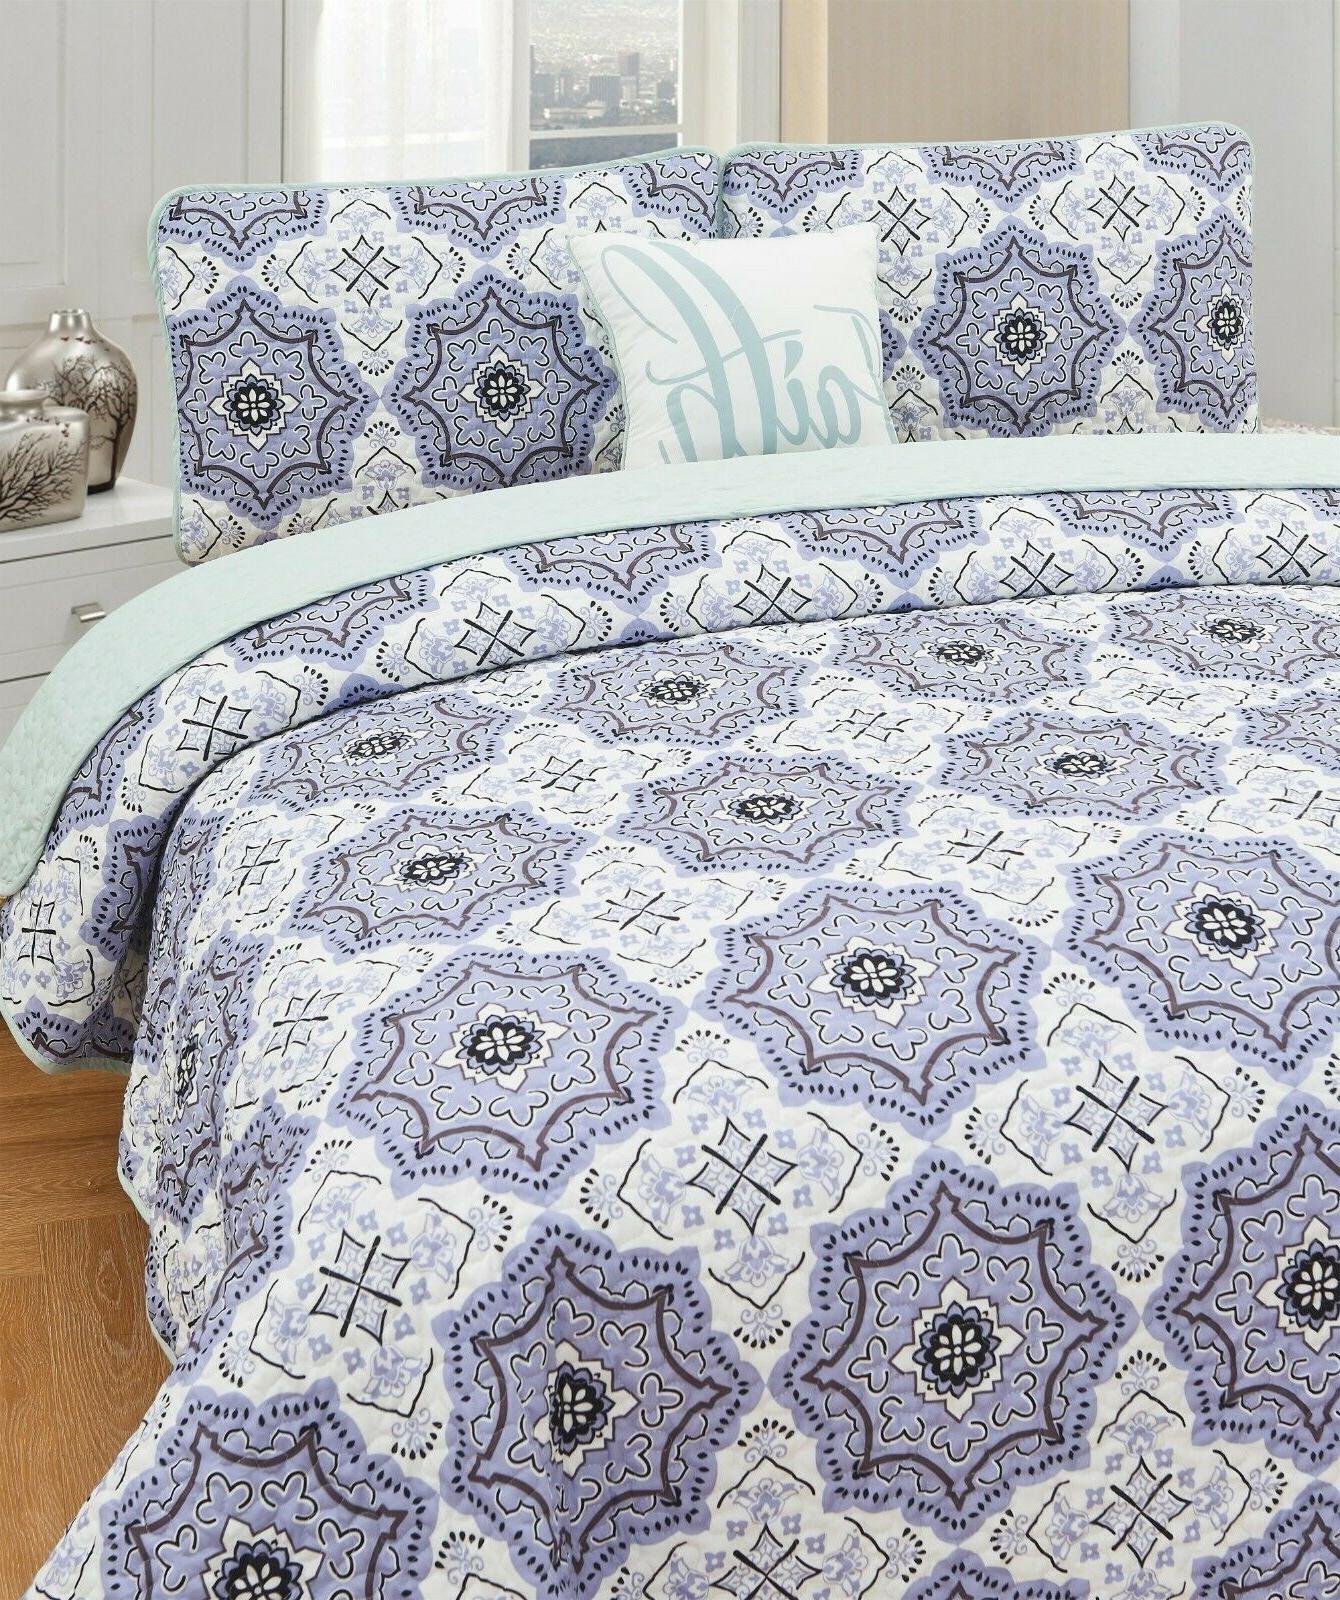 4 Quilted Set Printed Pattern King Queen Pillows Shams